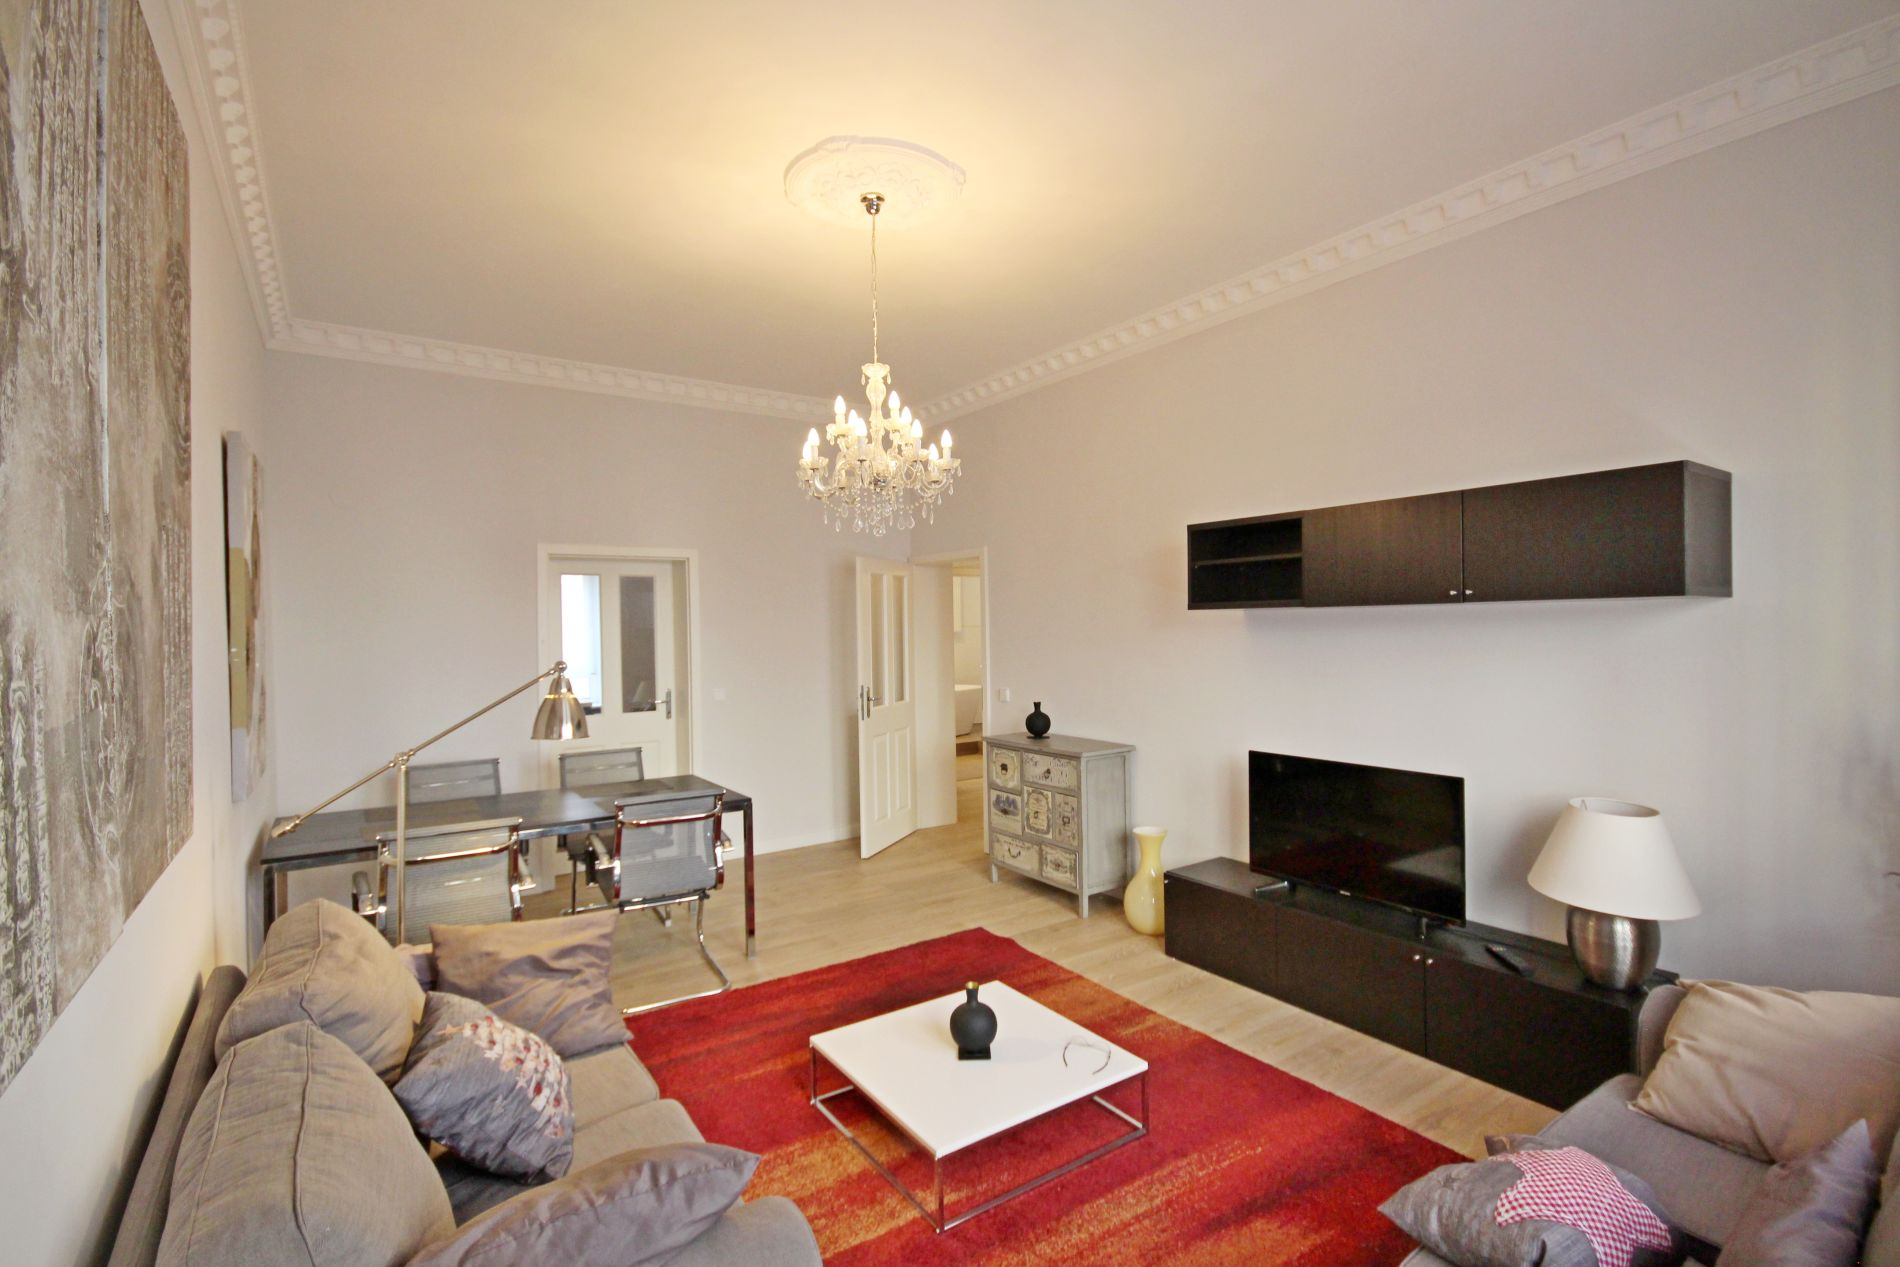 Serviced apartment in Sachsenhausen, Frankfurt suitable for families with children